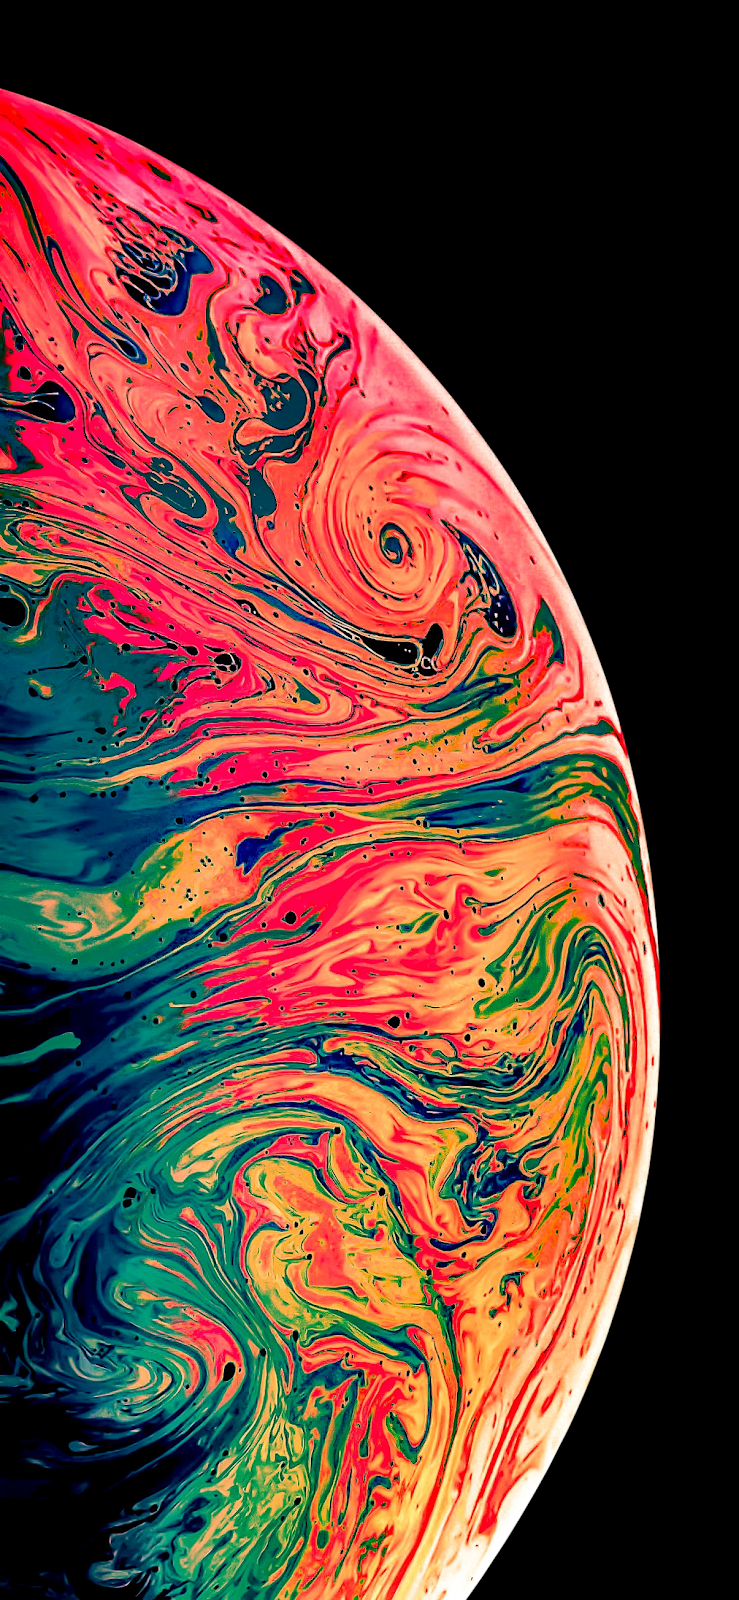 Wallpapers For Iphone Xs Max 4k